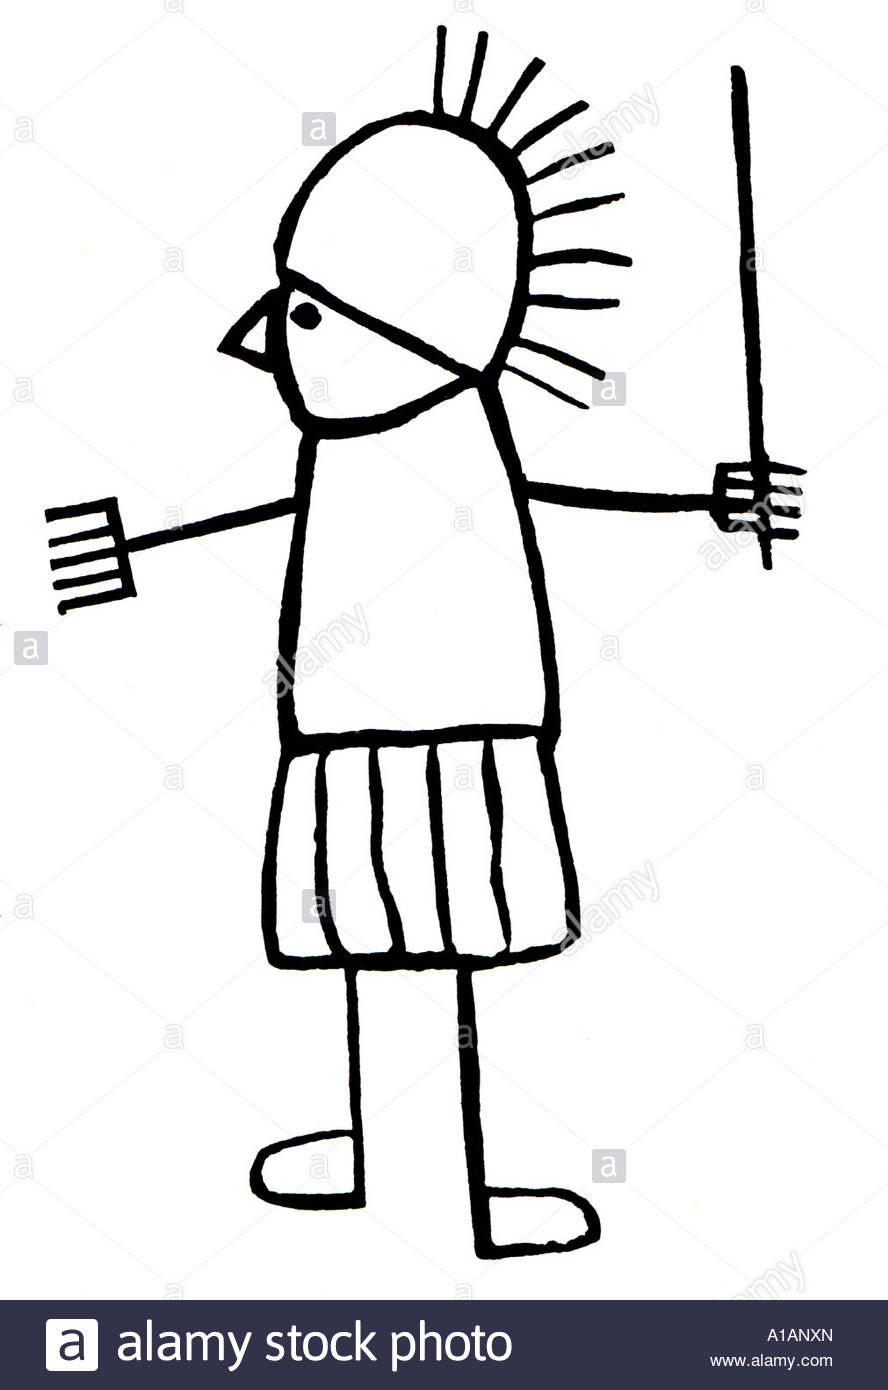 Graffiti of stick figure soldier from Pompeii Stock Photo, Royalty.